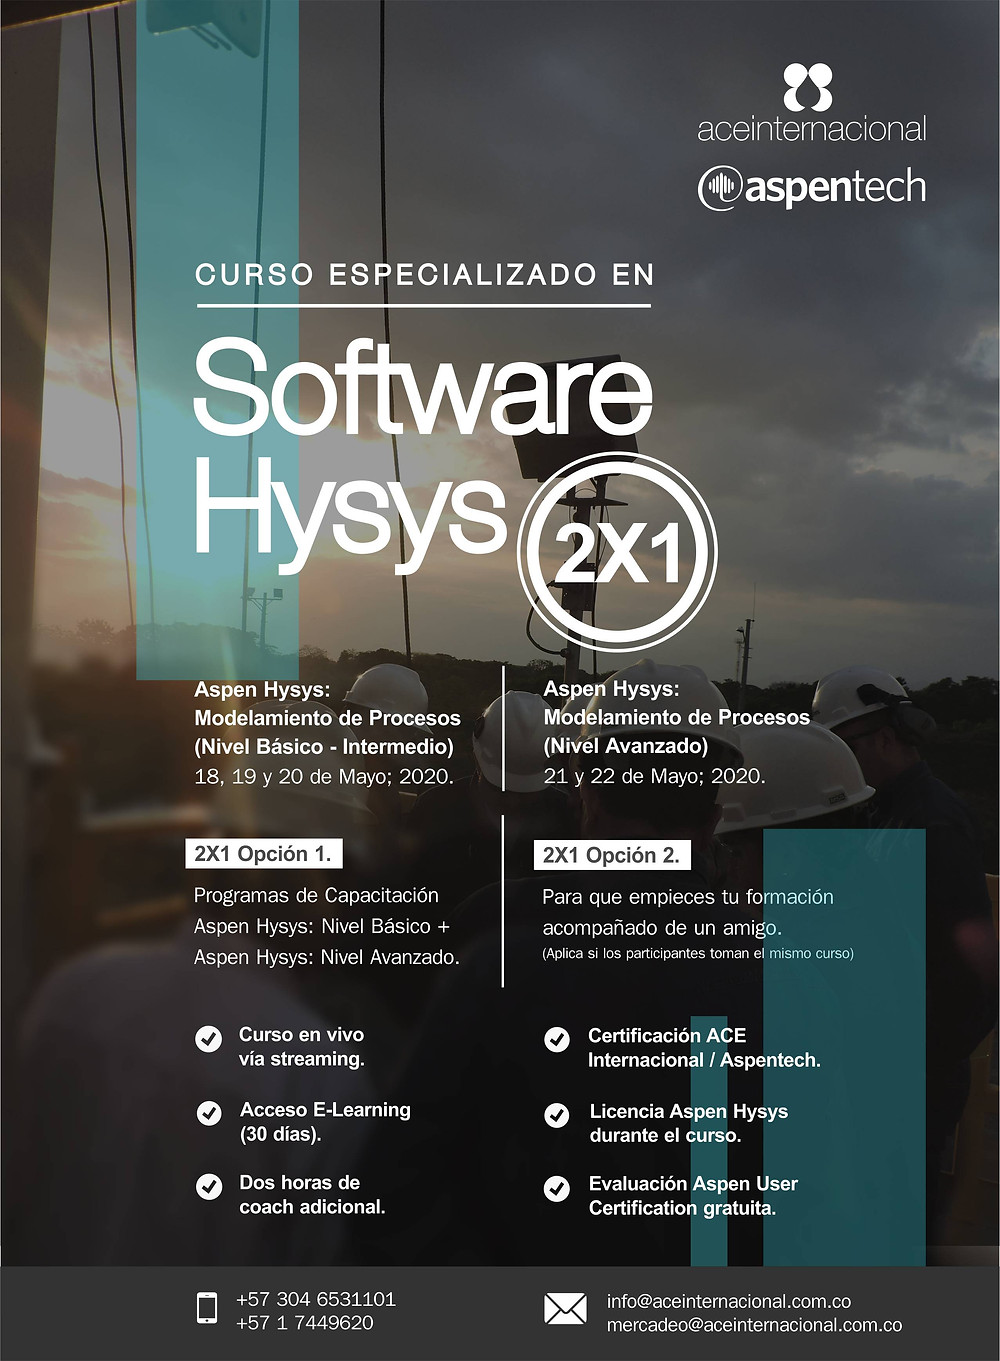 Cursos Software Hysys ACE Internacional Aspentech - Capacitación virtual